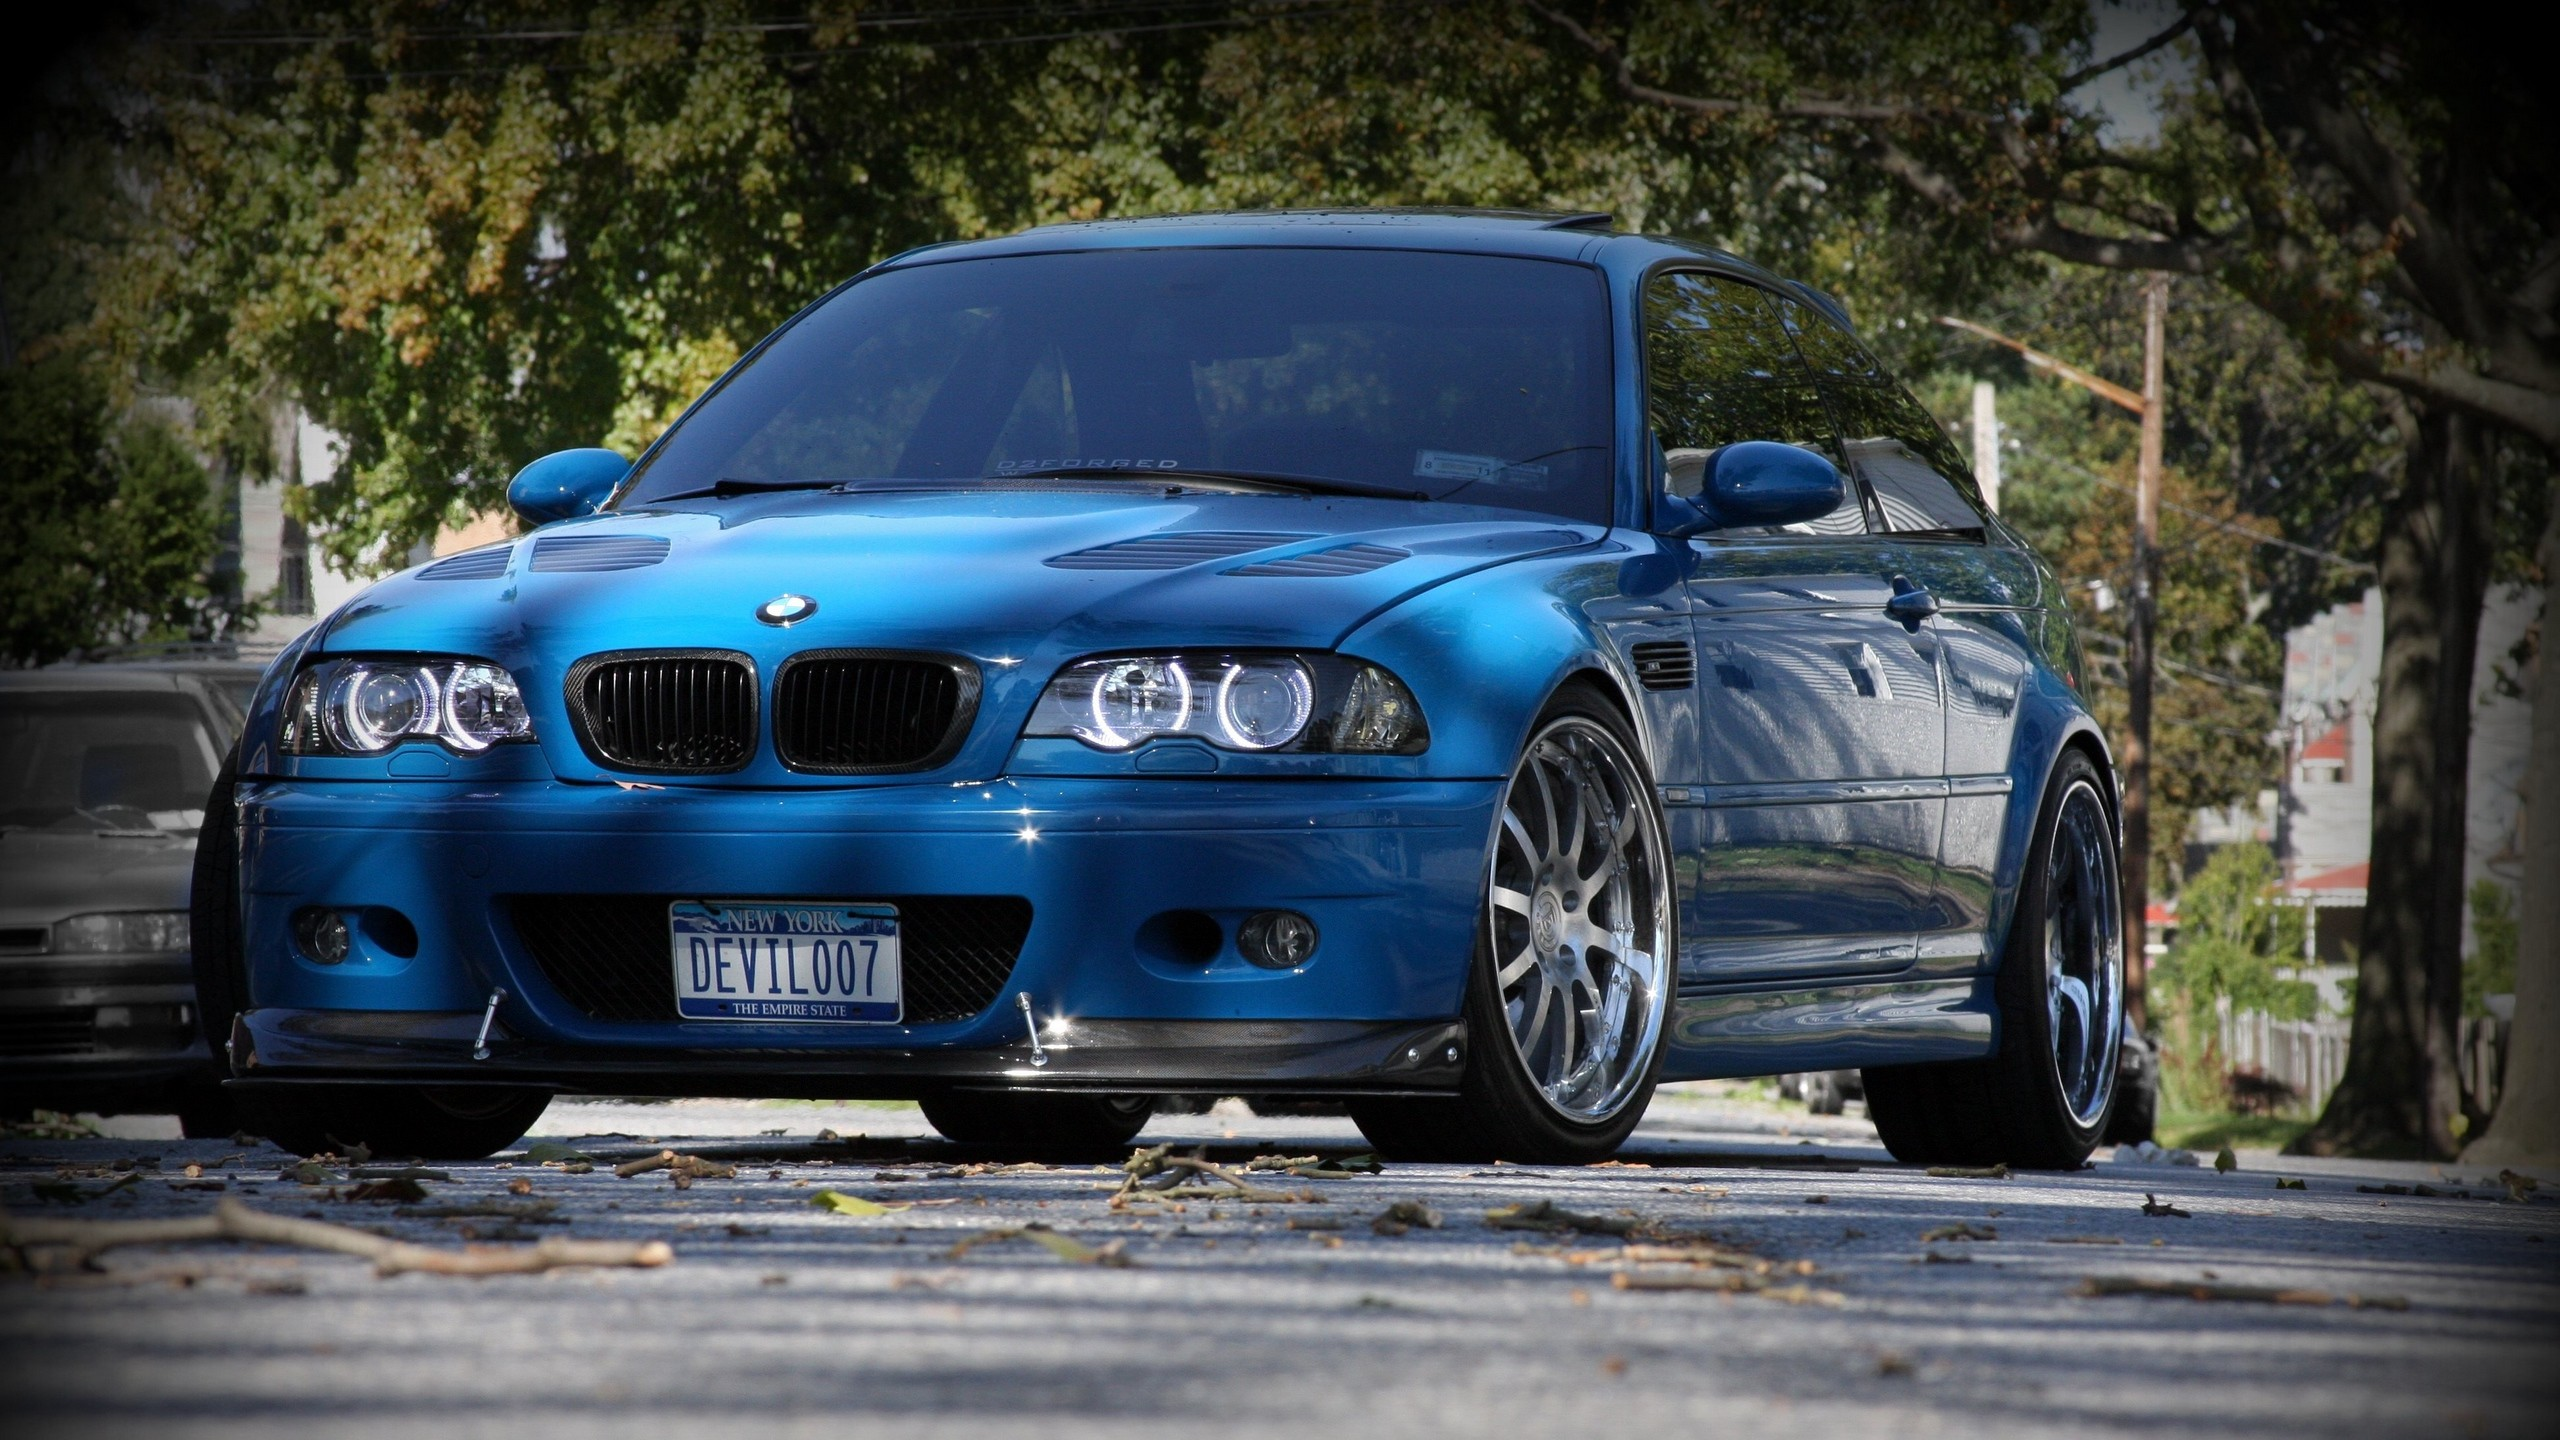 2560x1440  Wallpaper bmw, m3, e46, blue, front view